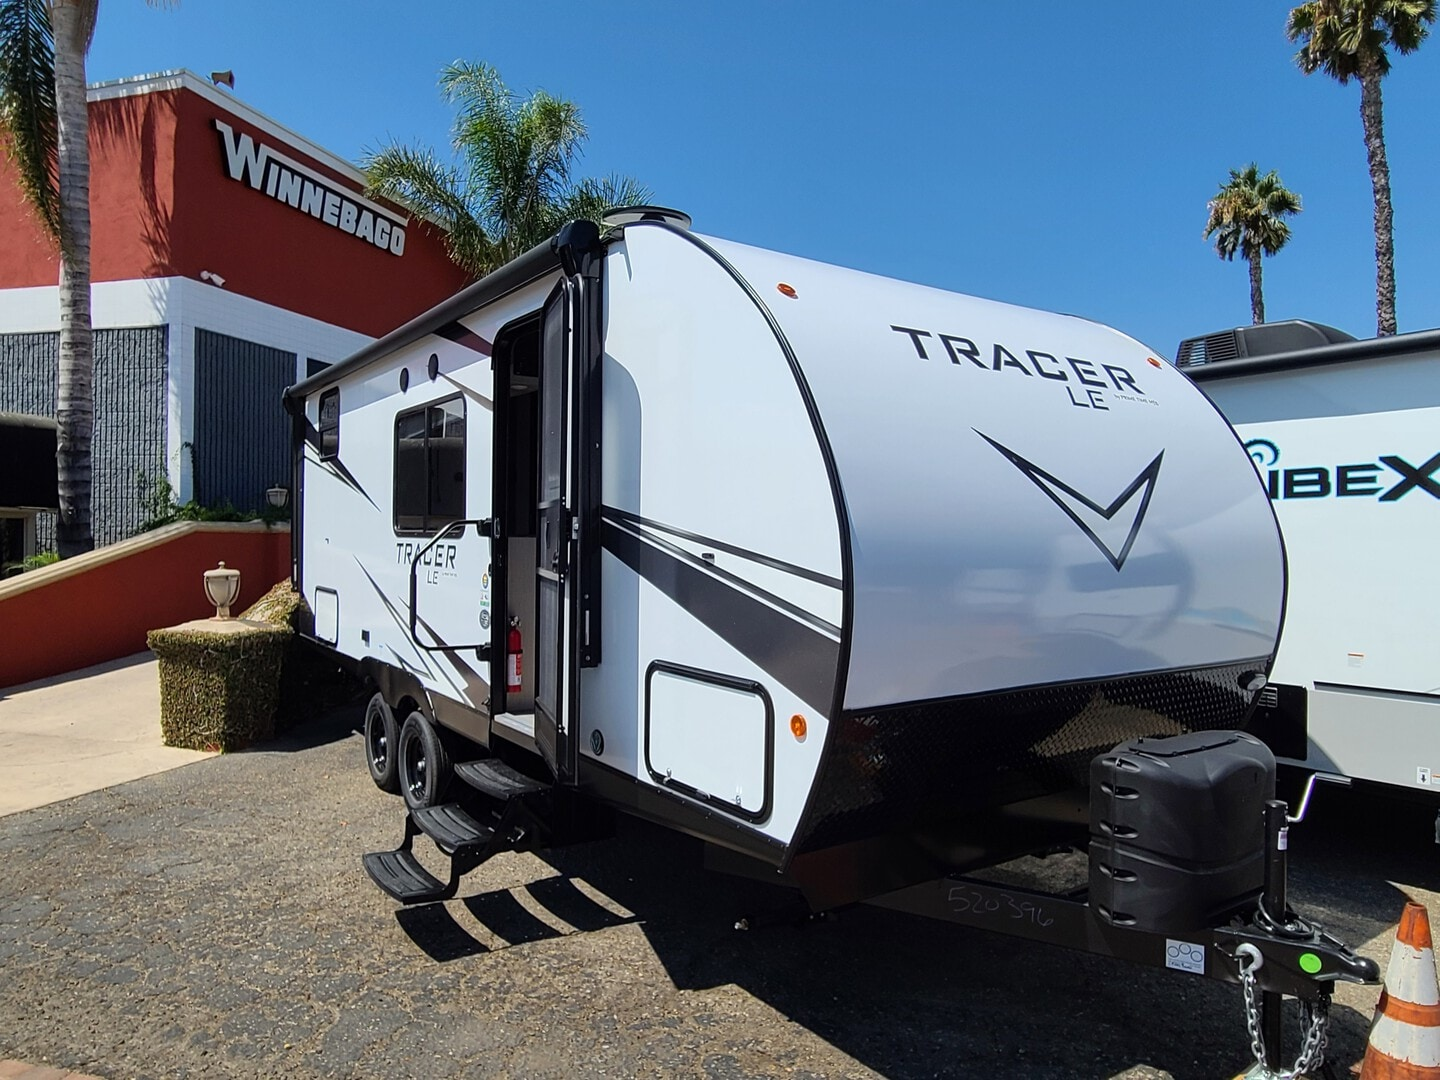 New, 2022, Tracer, 200BHLE, Travel Trailers